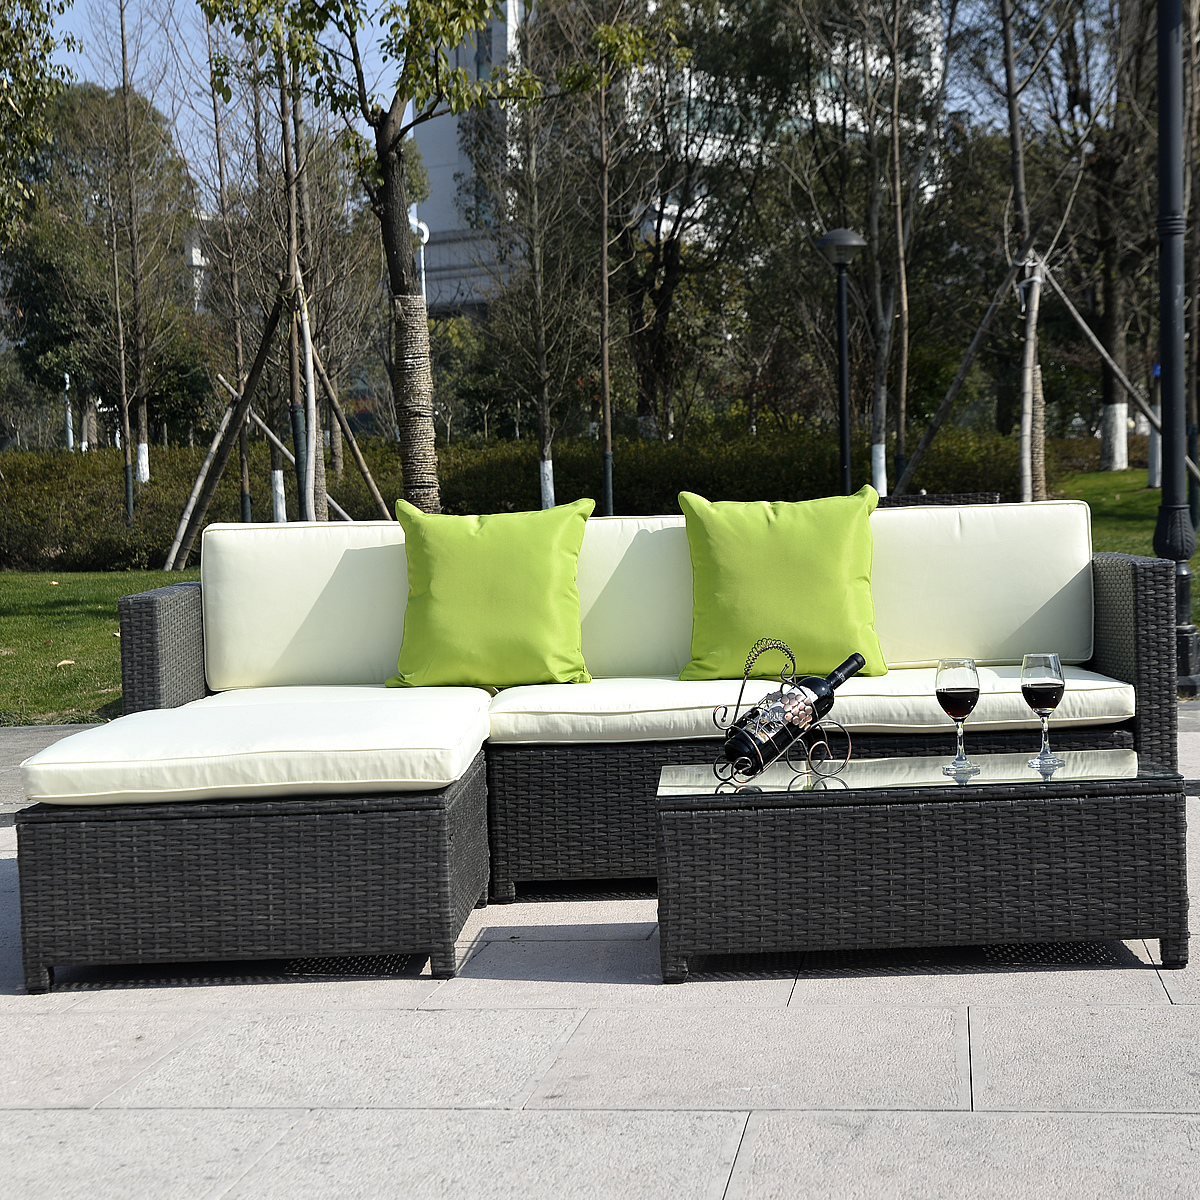 Costway Outdoor Patio 5pc Furniture Sectional Pe Wicker Rattan Sofa Set Deck Couch Black... by Costway